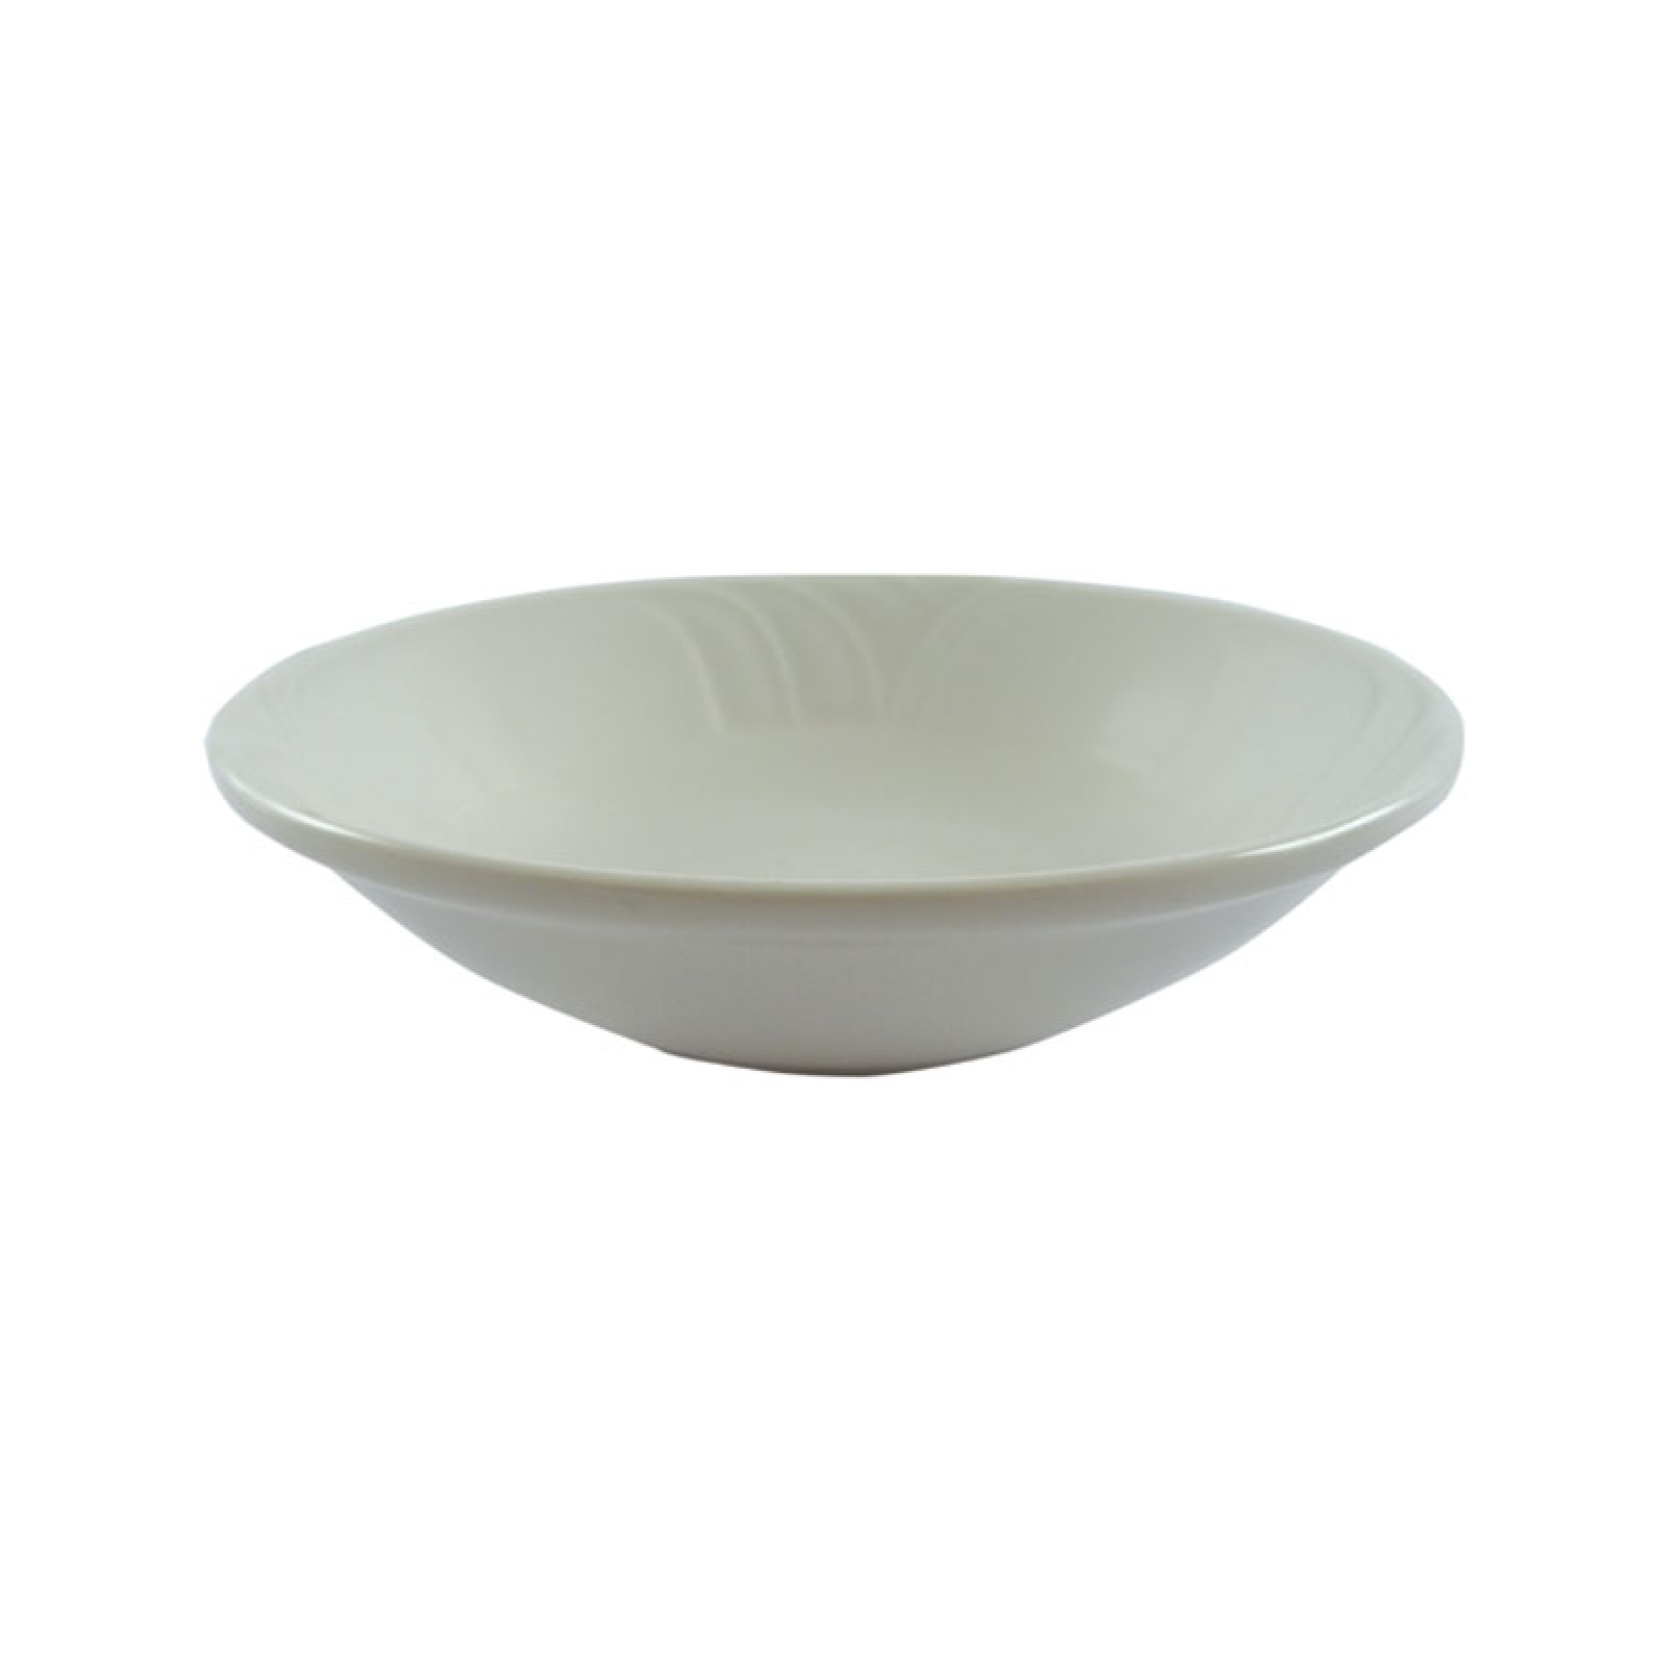 C0327 Silhouette Oatmeal Bowl